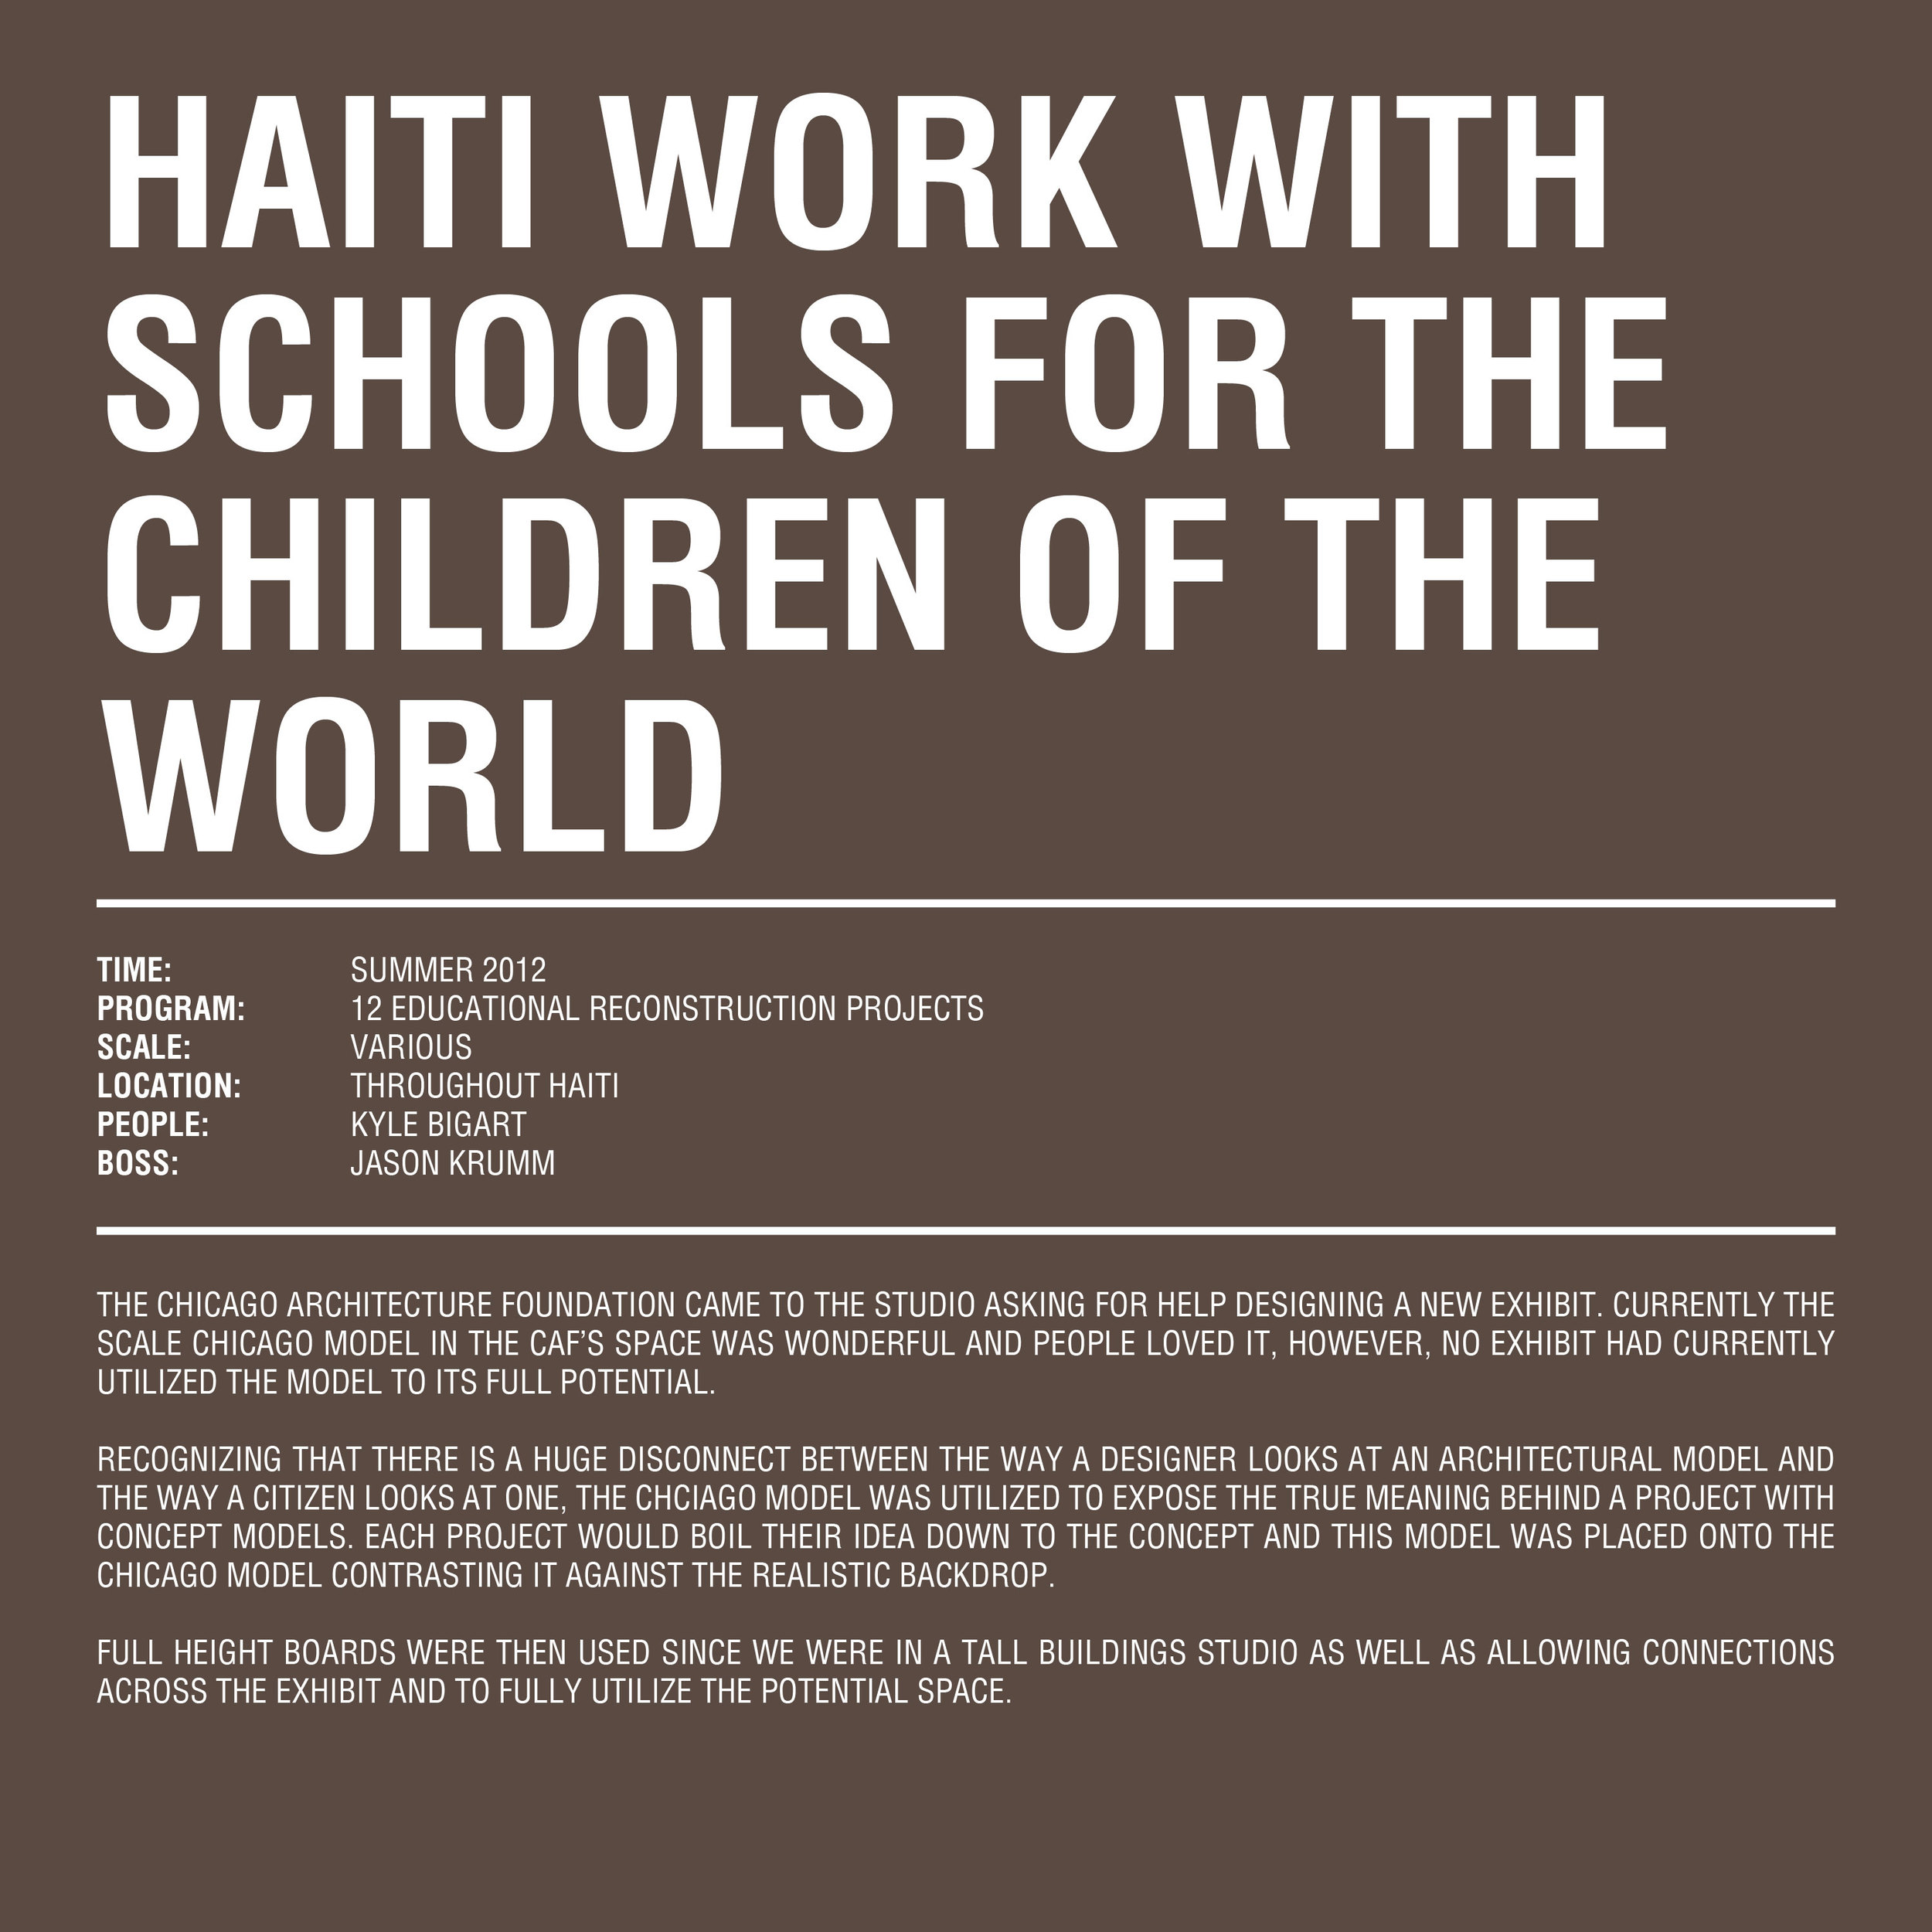 _MASTER-TITLE PAGES_HAITI WORK.jpg